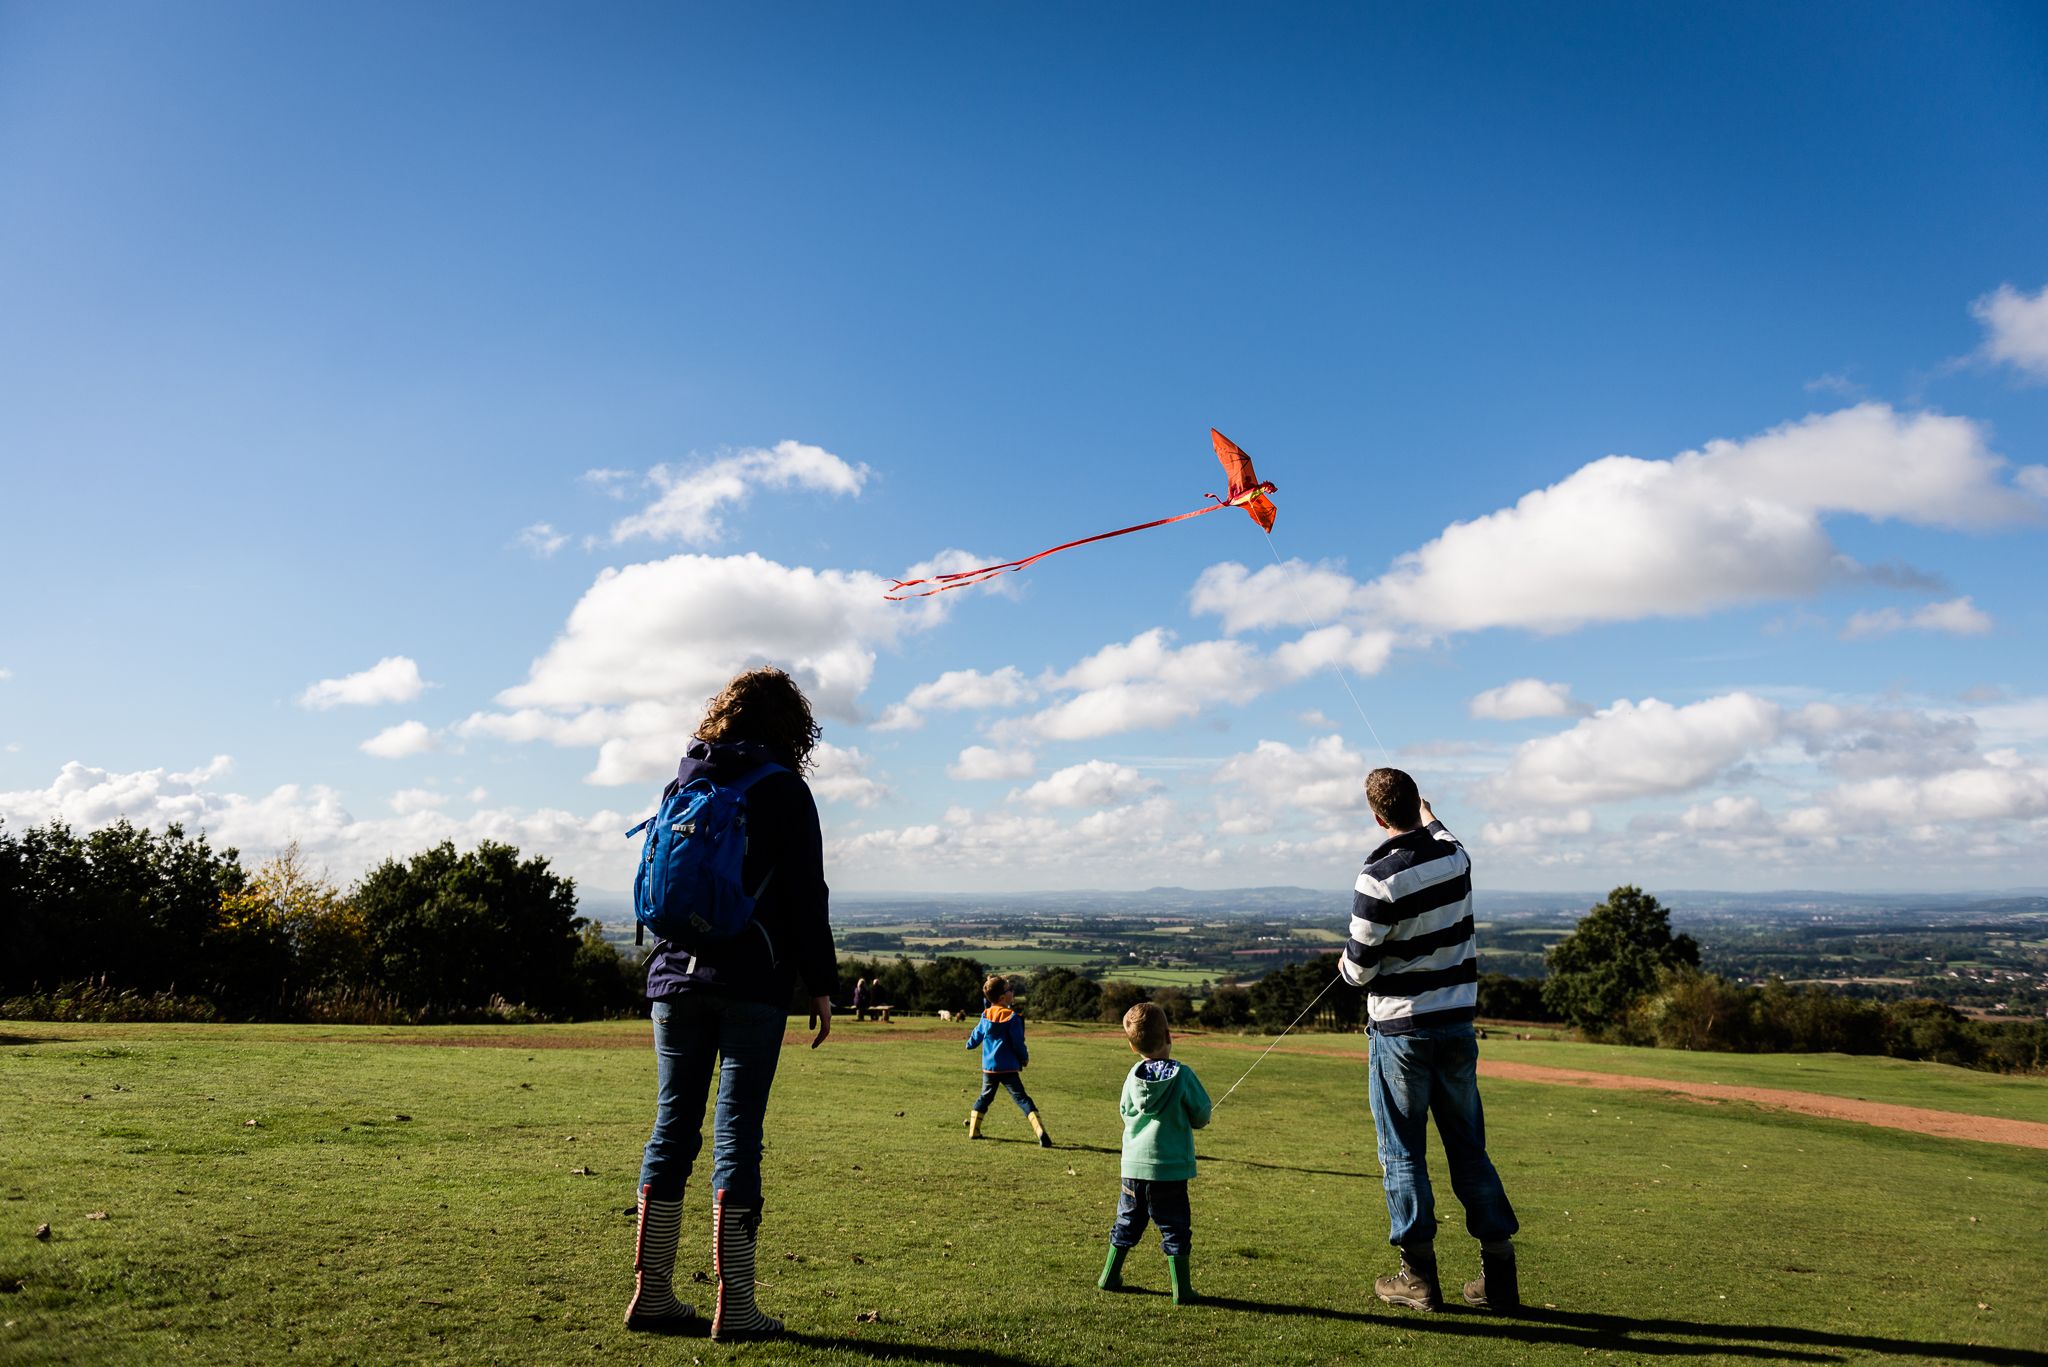 Documentary Family Photography at Clent Hills, Worcestershire Family Lifestyle Photography Woods Outdoors Trees Flying Kite - Jenny Harper-12.jpg